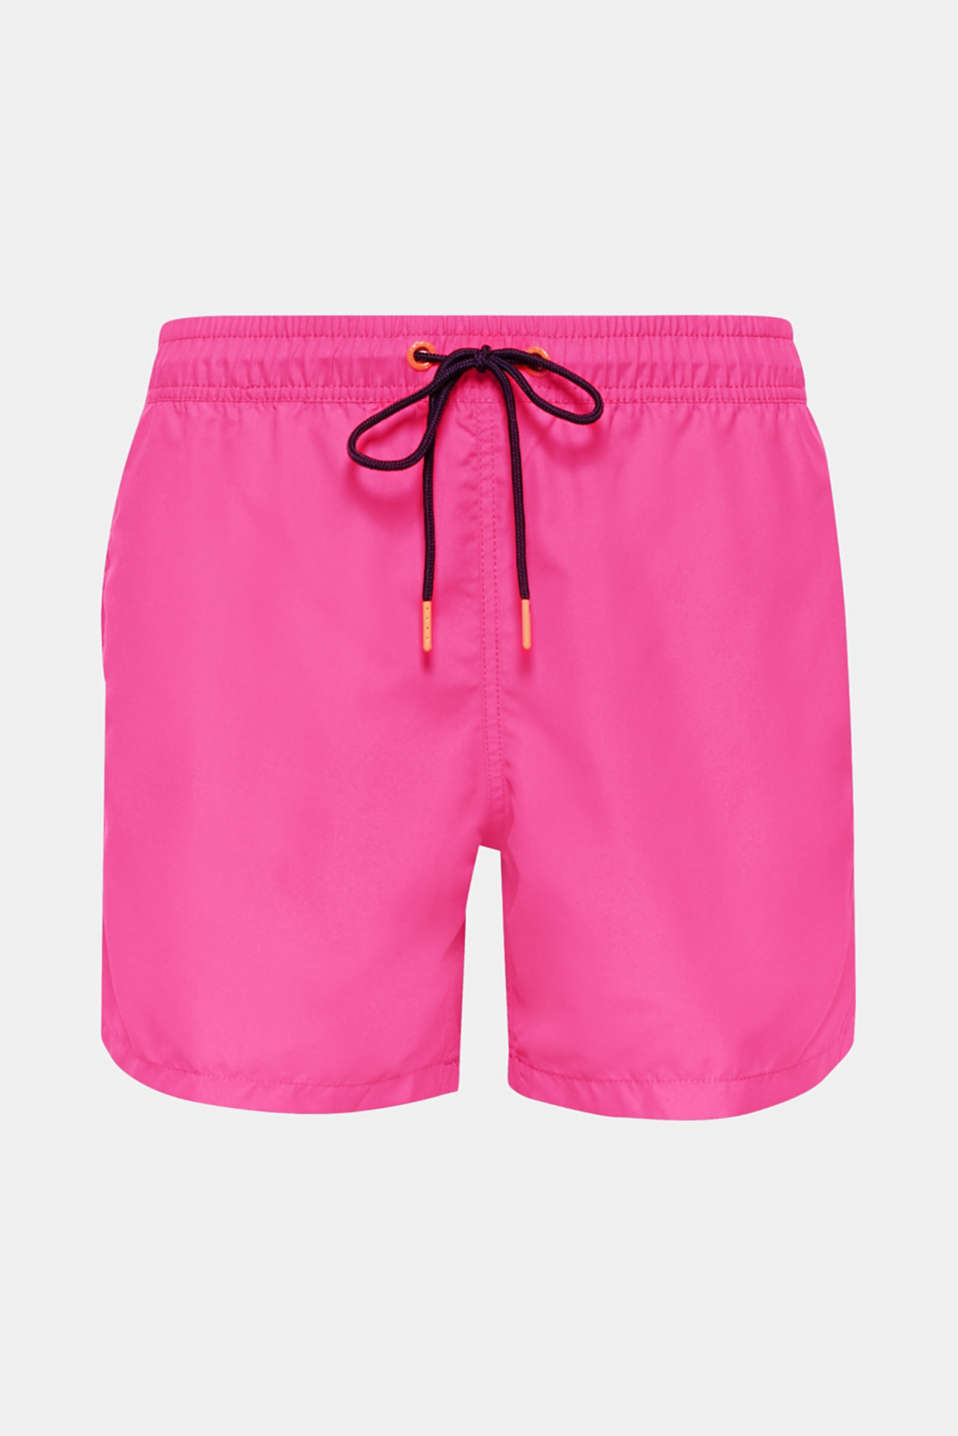 Esprit - Bade-Shorts in knalligem Farb-Mix